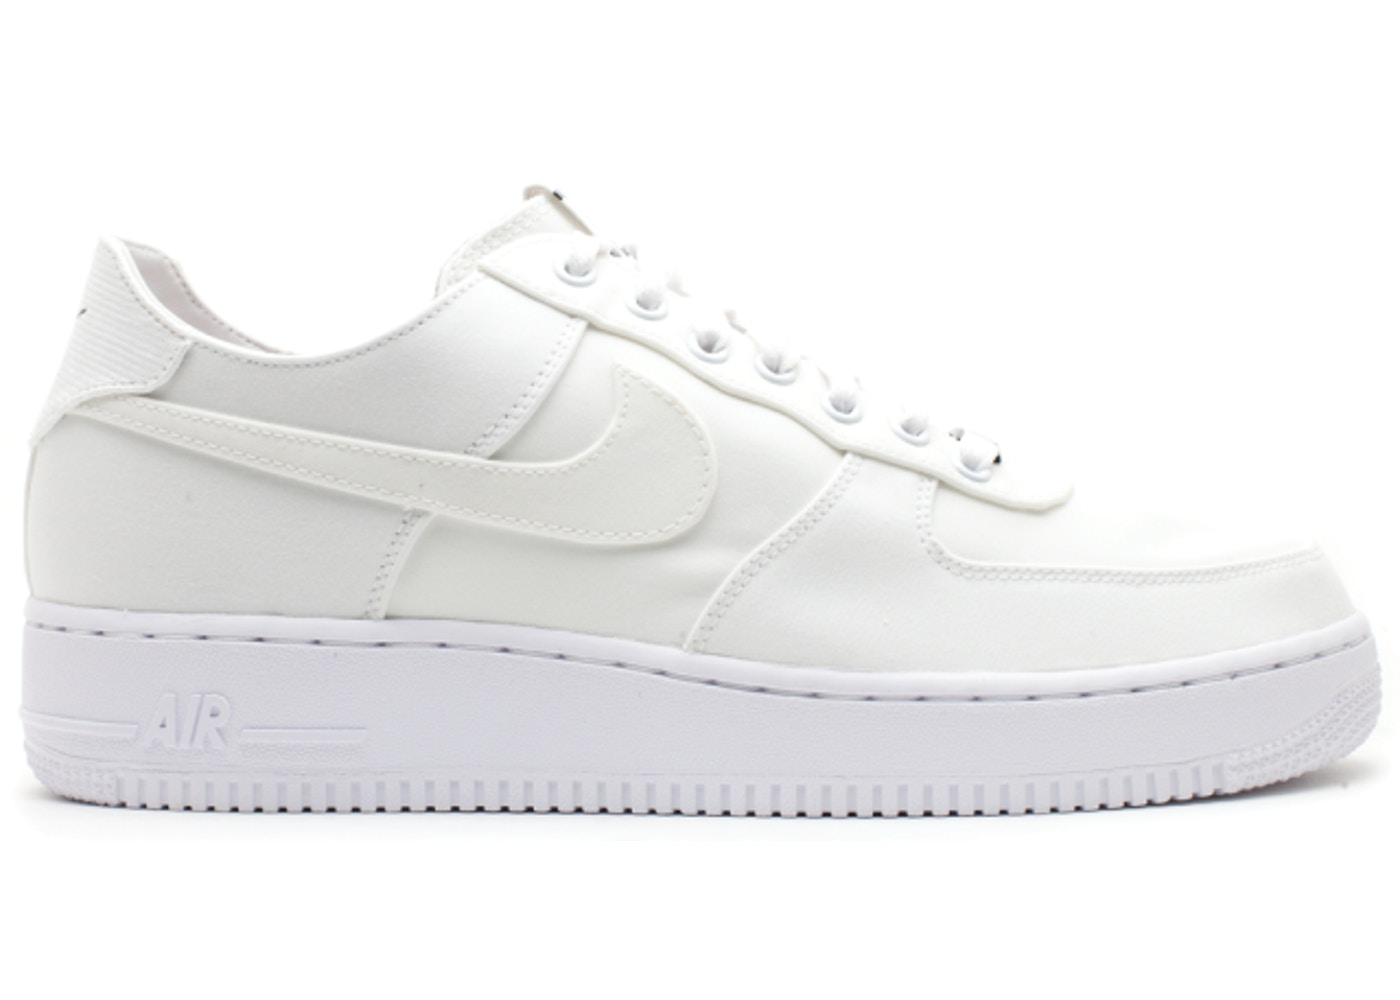 36a0bc739e968 Air Force 1 Low Dover Street Market - 543512-110